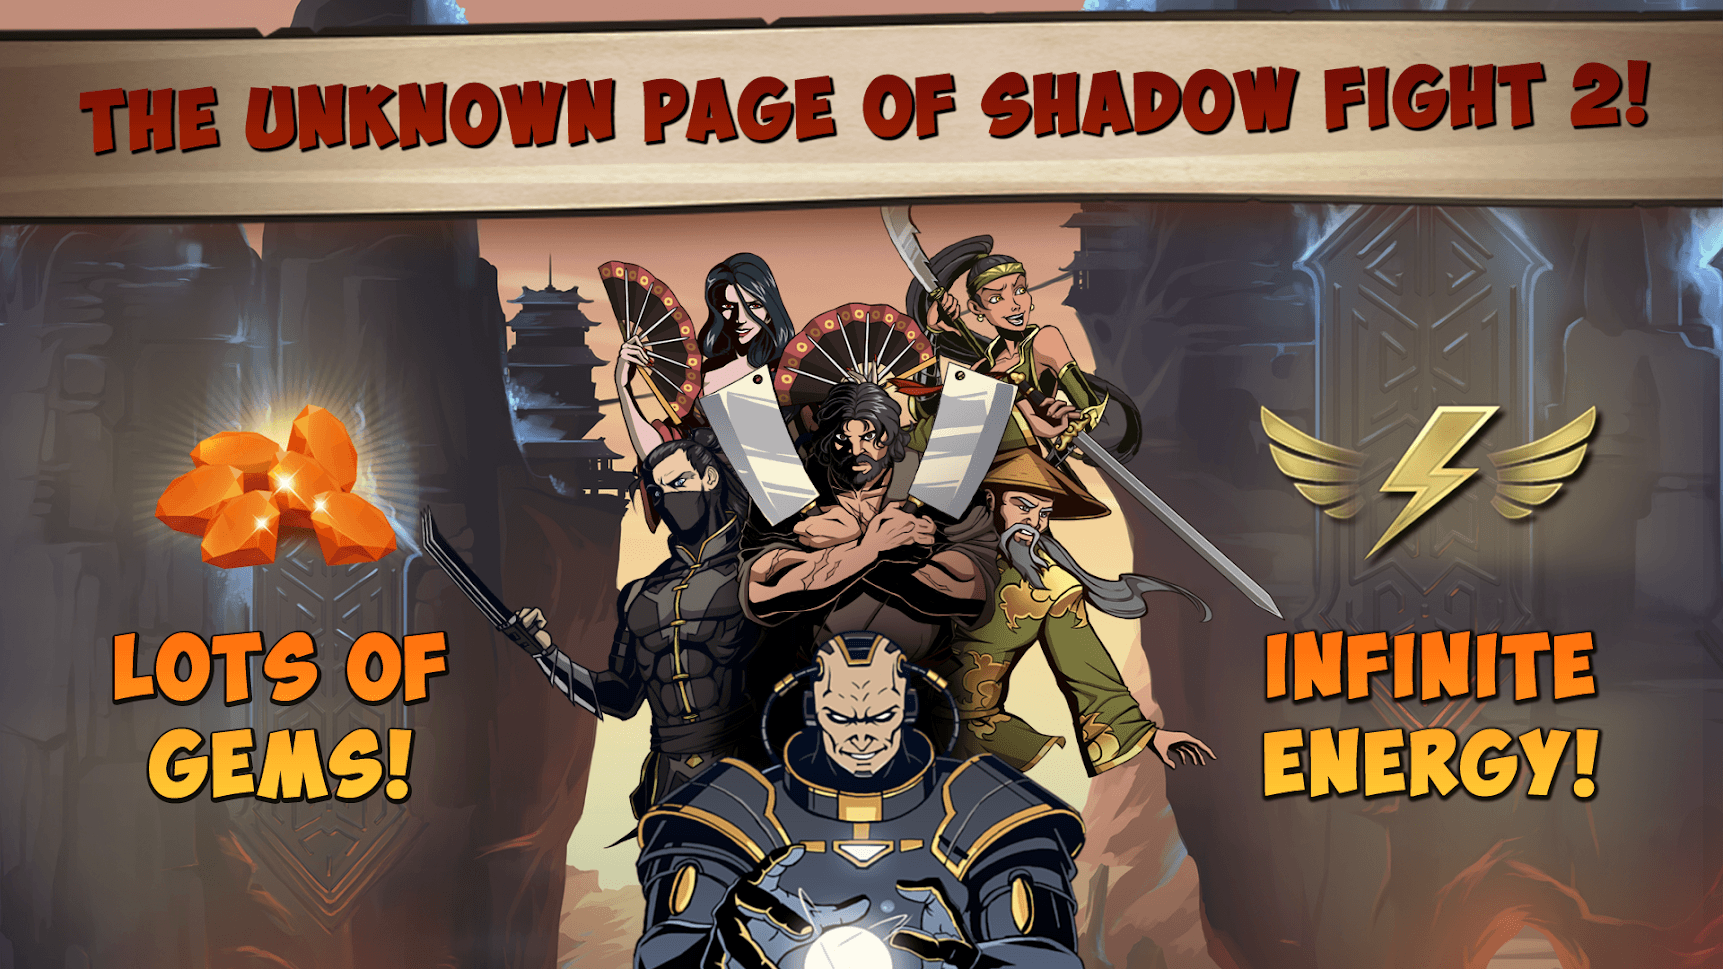 Lots of Gems and Infinite Energy of Shadow Fight 2 Special Edition